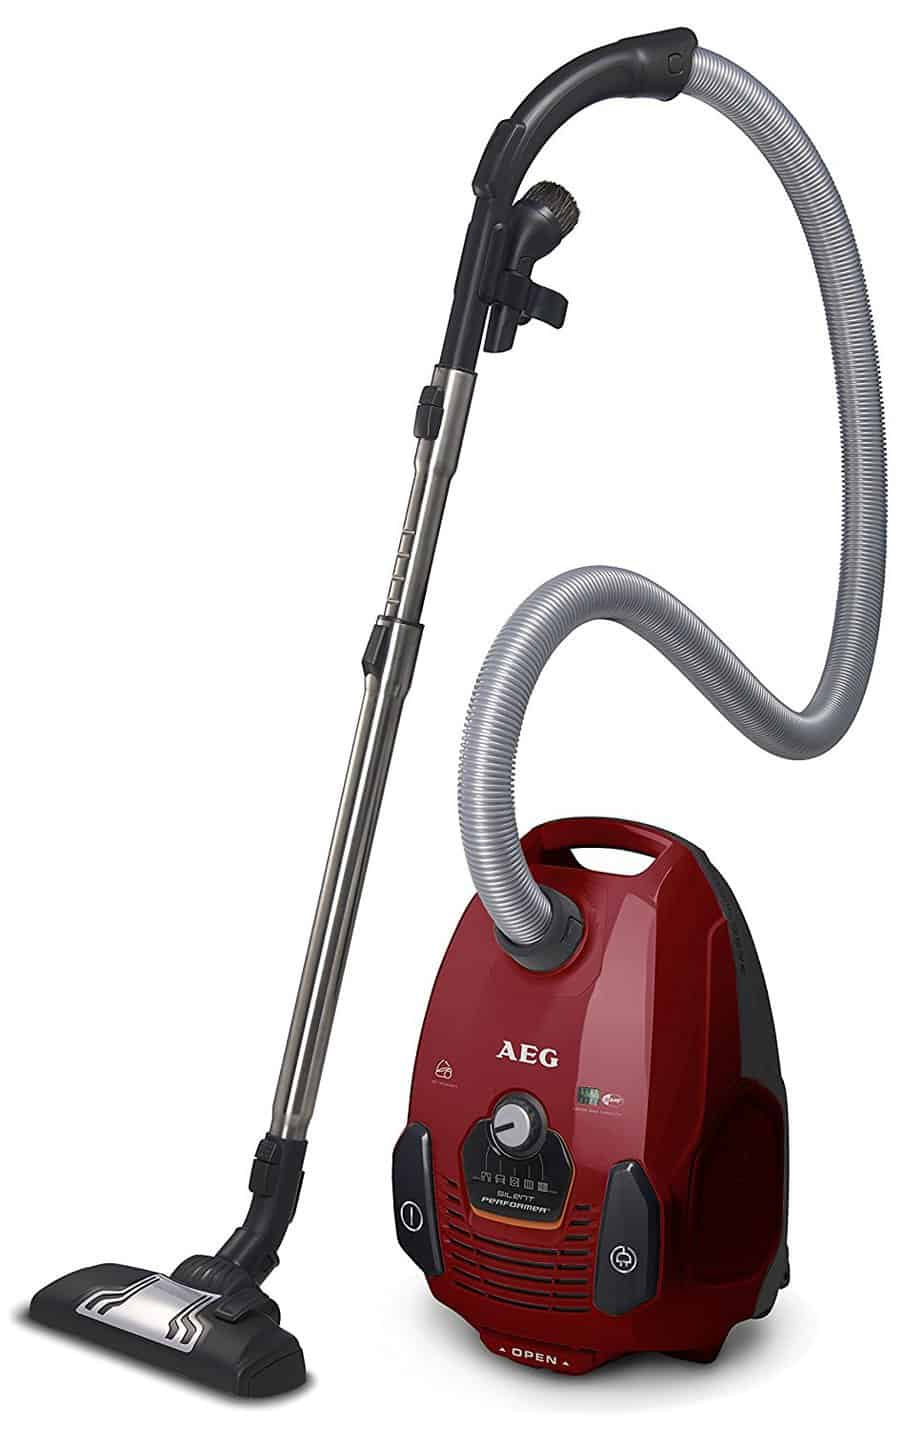 Quiet Vacuum Cleaners Review Of The Best 5 Silent Models Updated Feb